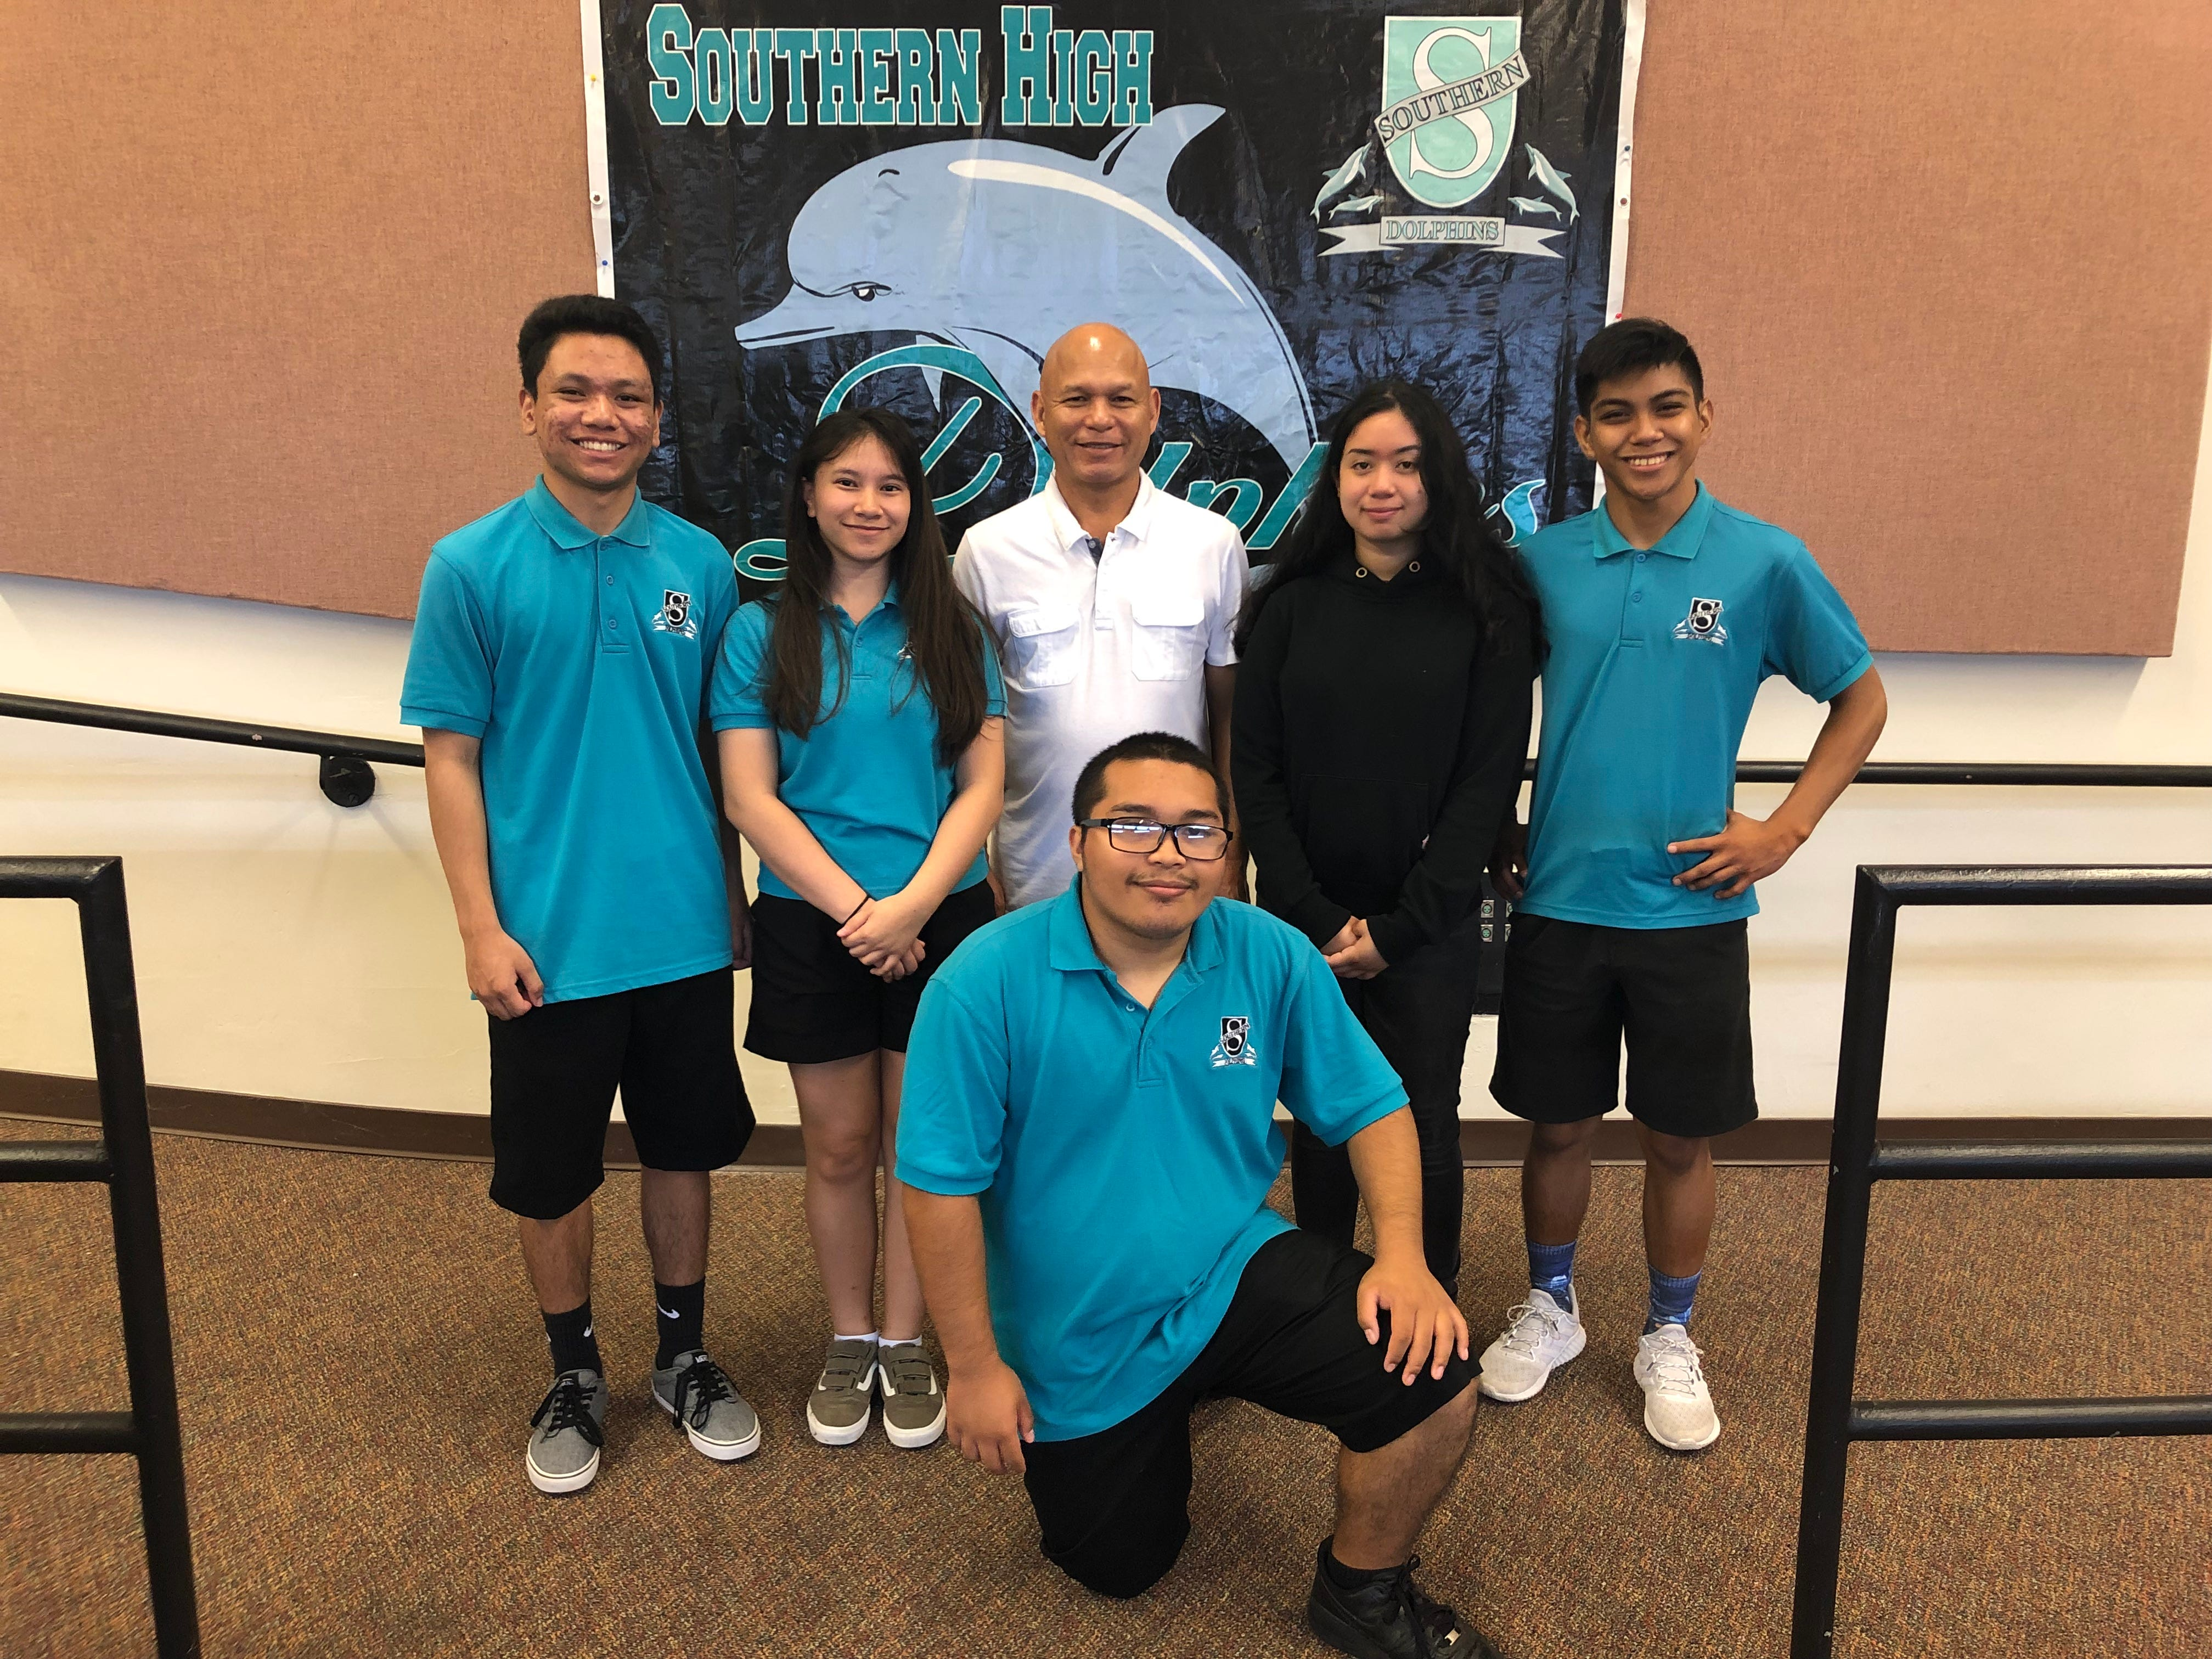 Southern Variety along with their band director, Larry Franquez on March 15, 2019 at Southern High School. Not pictured: Cassandra Abuelencia.